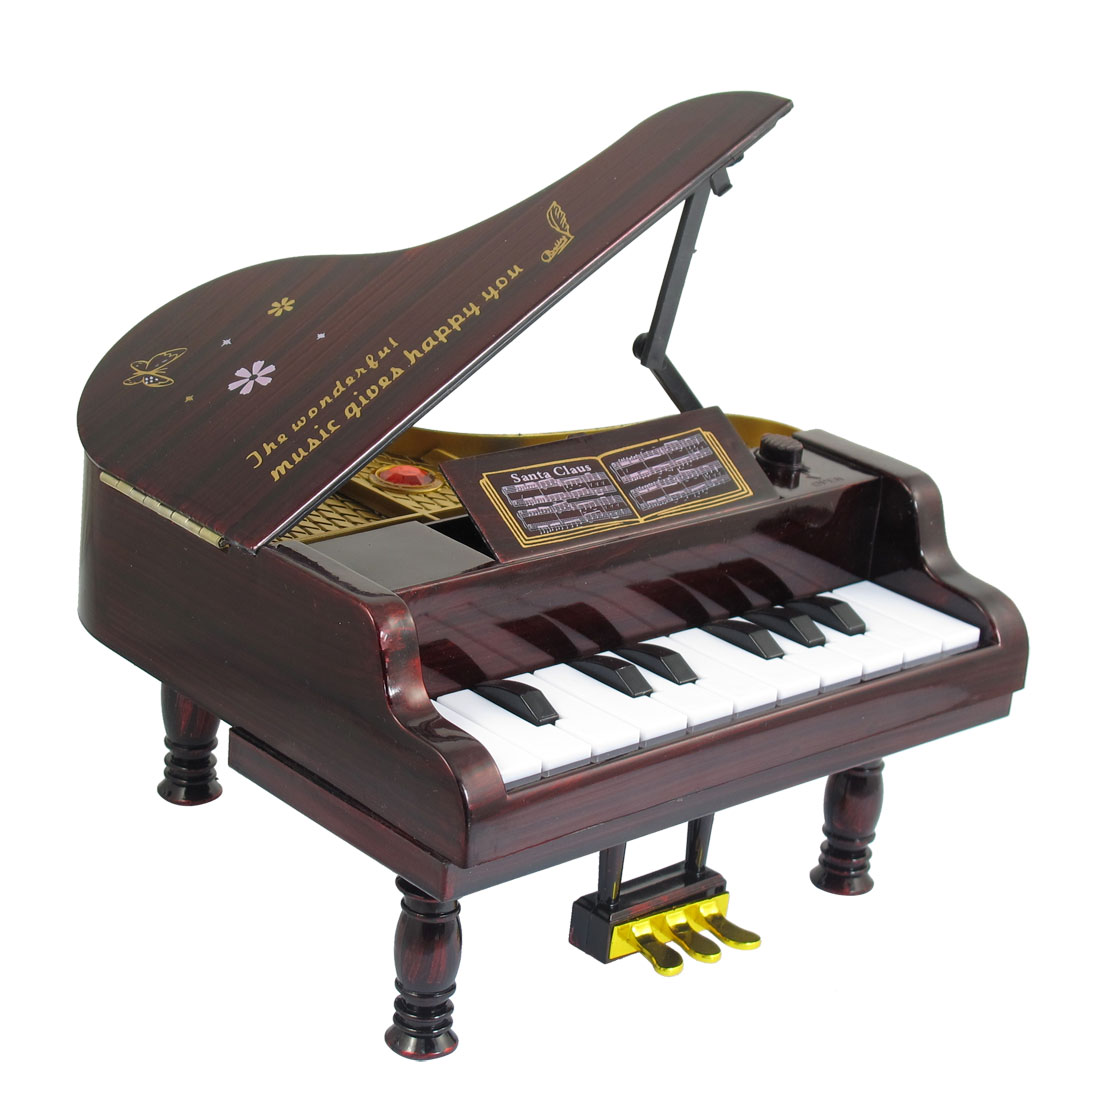 Redwood Plastic Simulation Charming Style Piano Music Maker Box Toy for Child